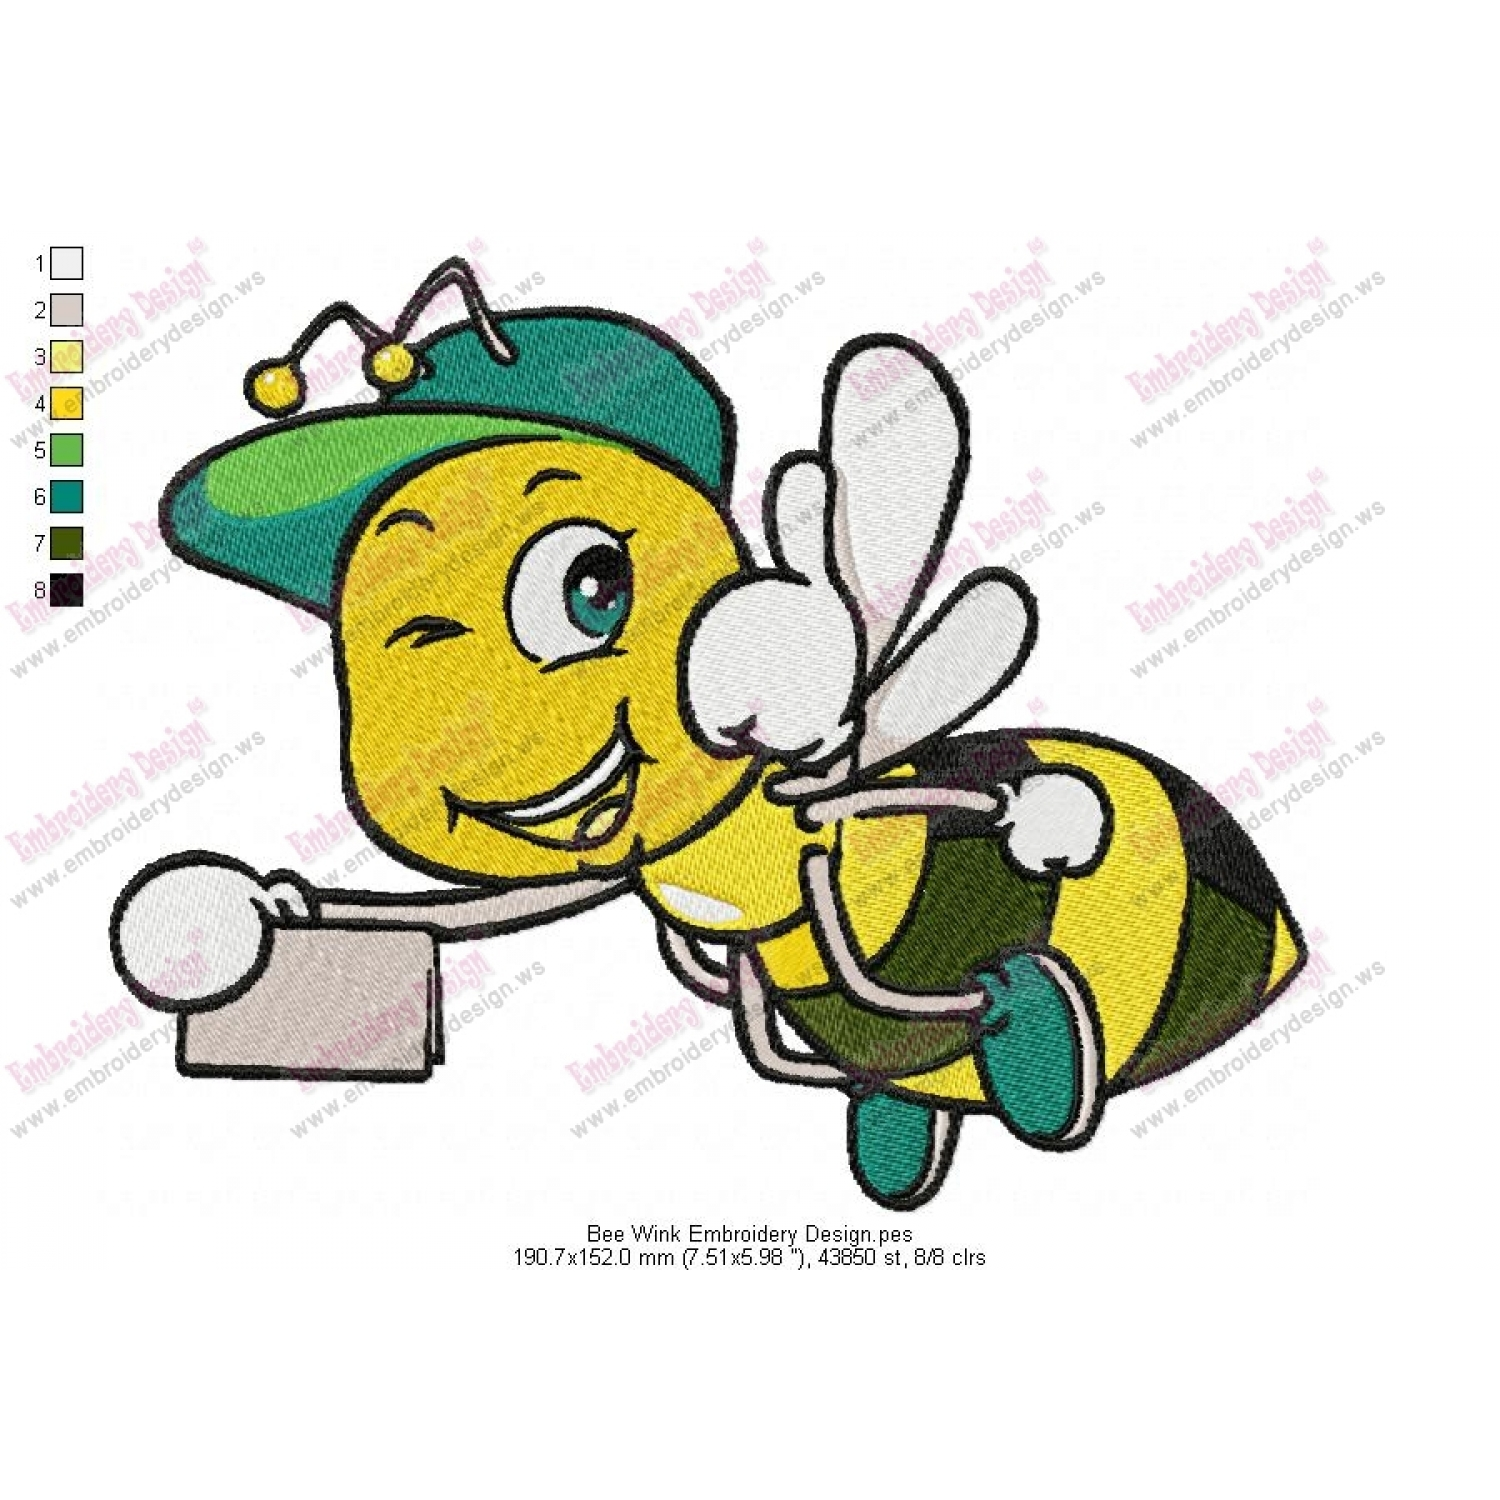 Bumble bee embroidery designs car pictures - Bee Wink Embroidery Design